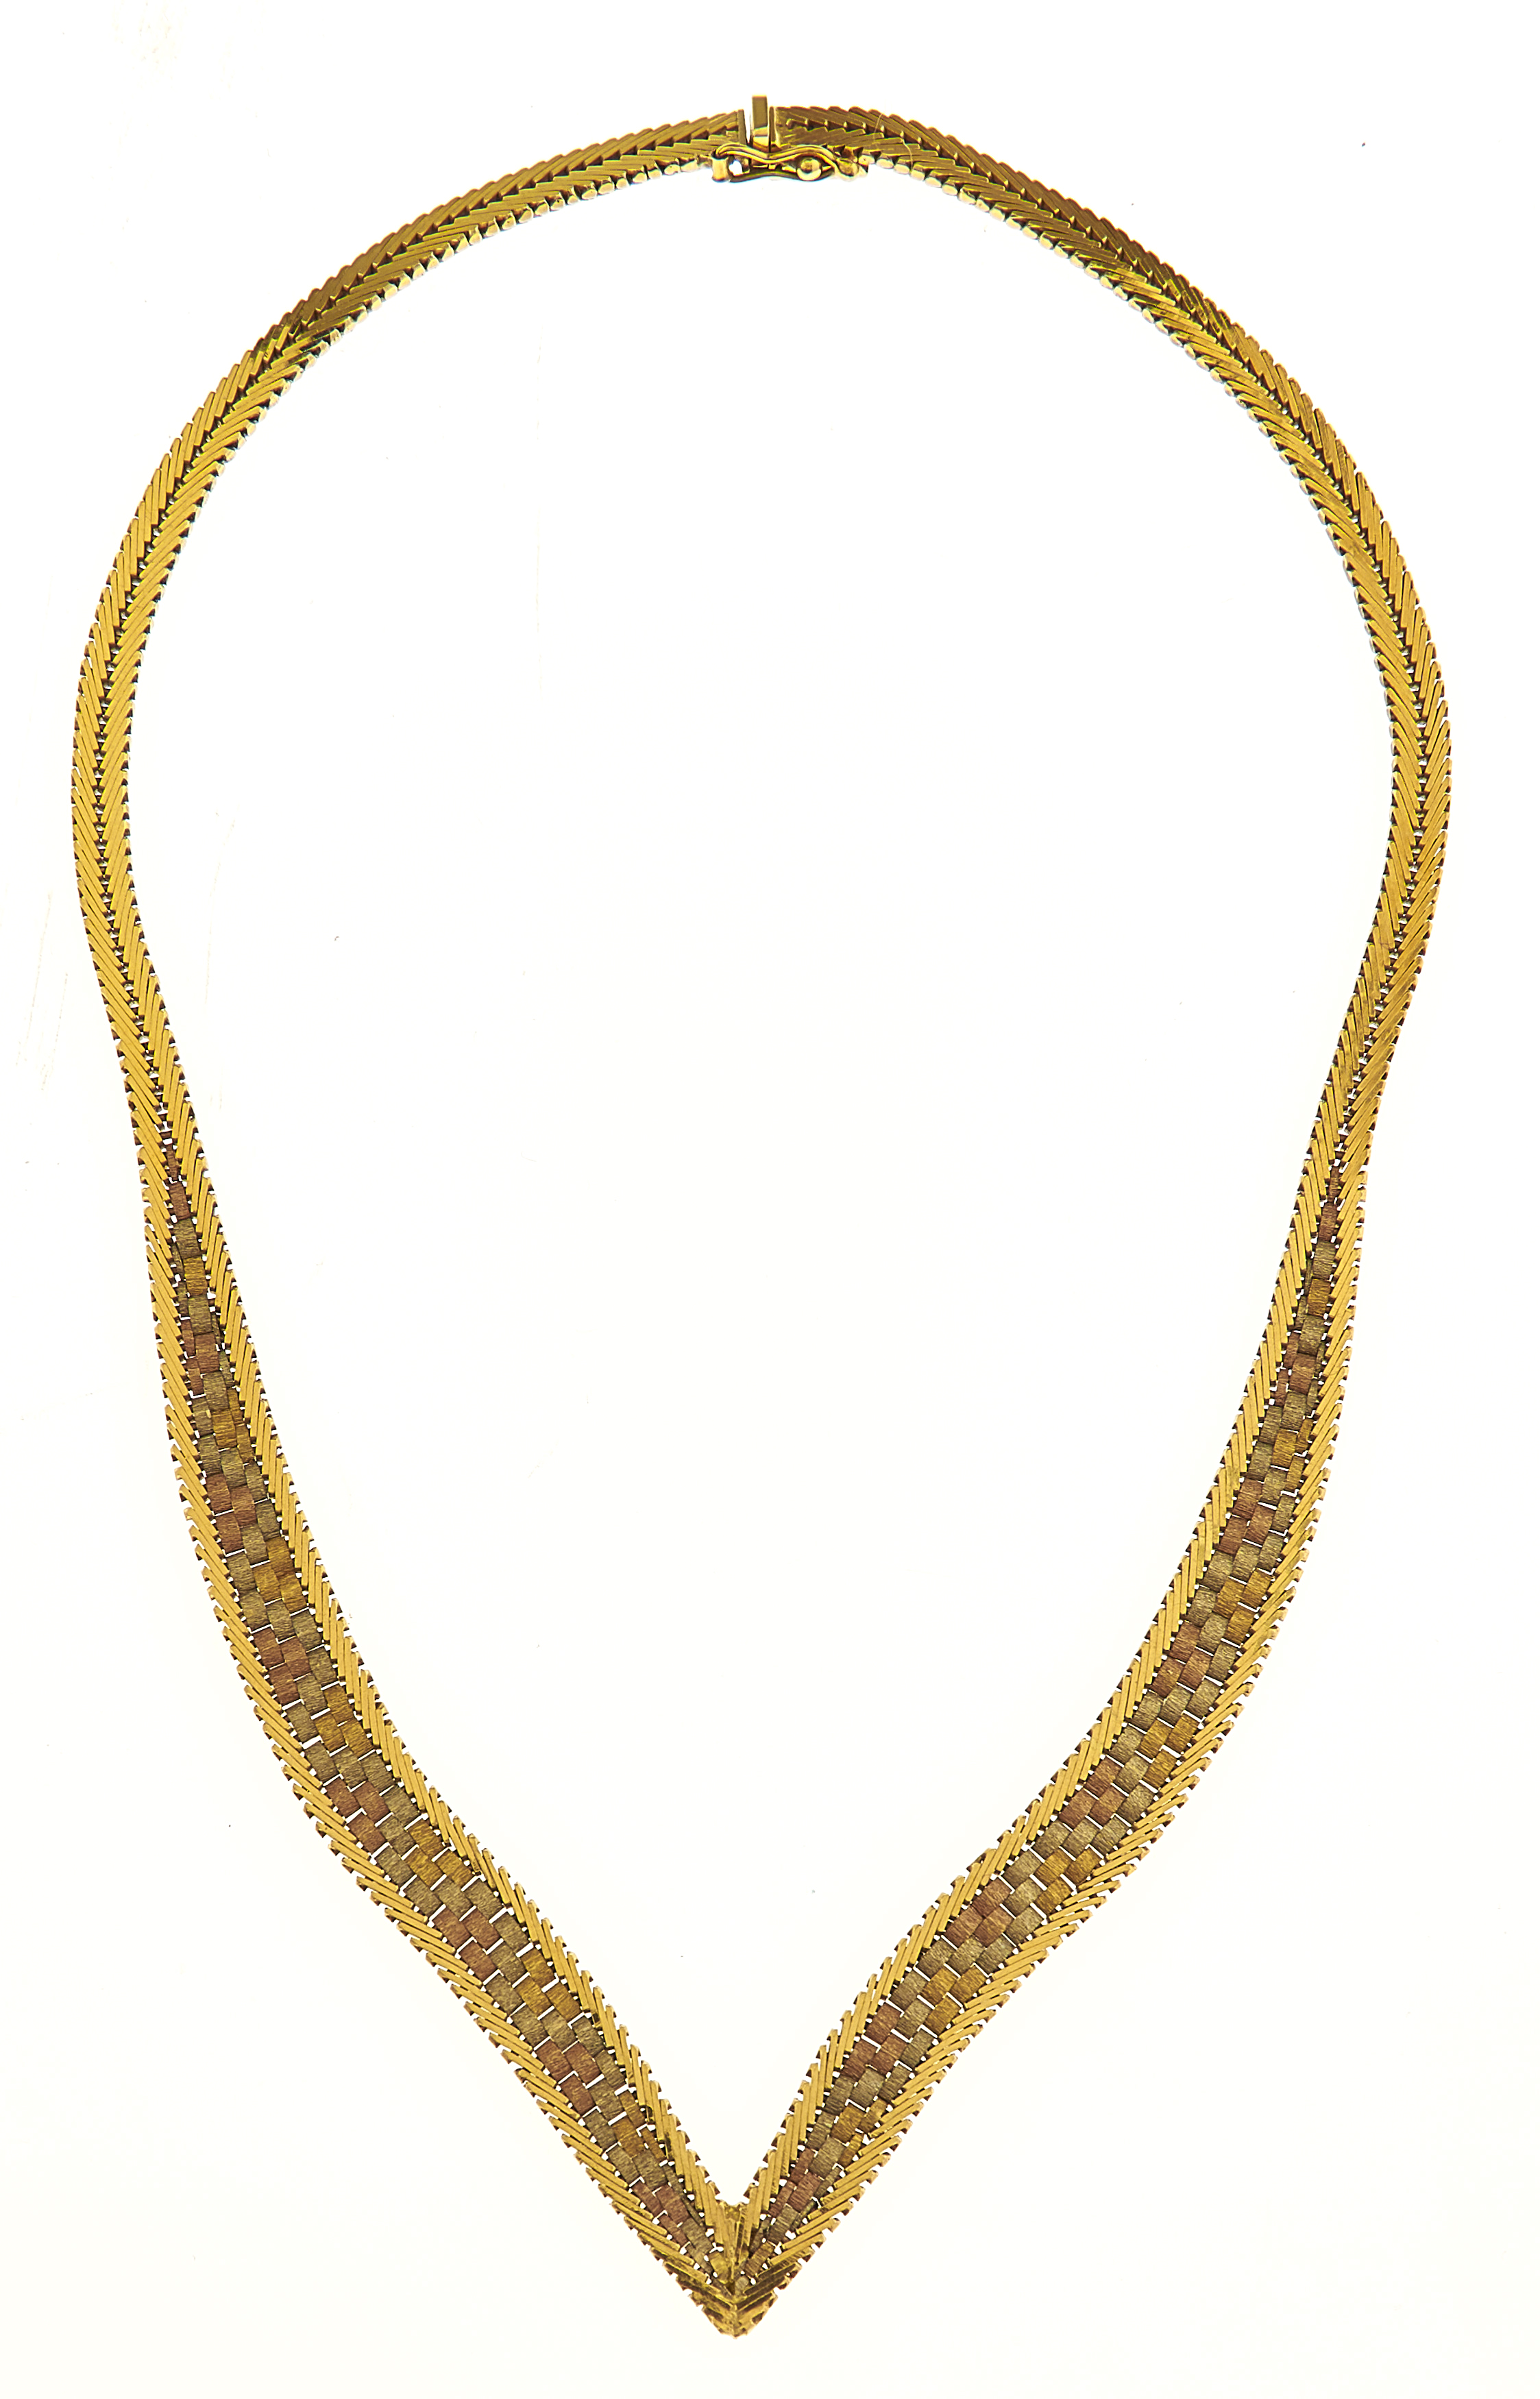 A 18CT THREE COLOUR GOLD NECKLACE, APPROXIMATELY 42CM L, IMPORT MARKED EDINBURGH 1975, 43.9G Good